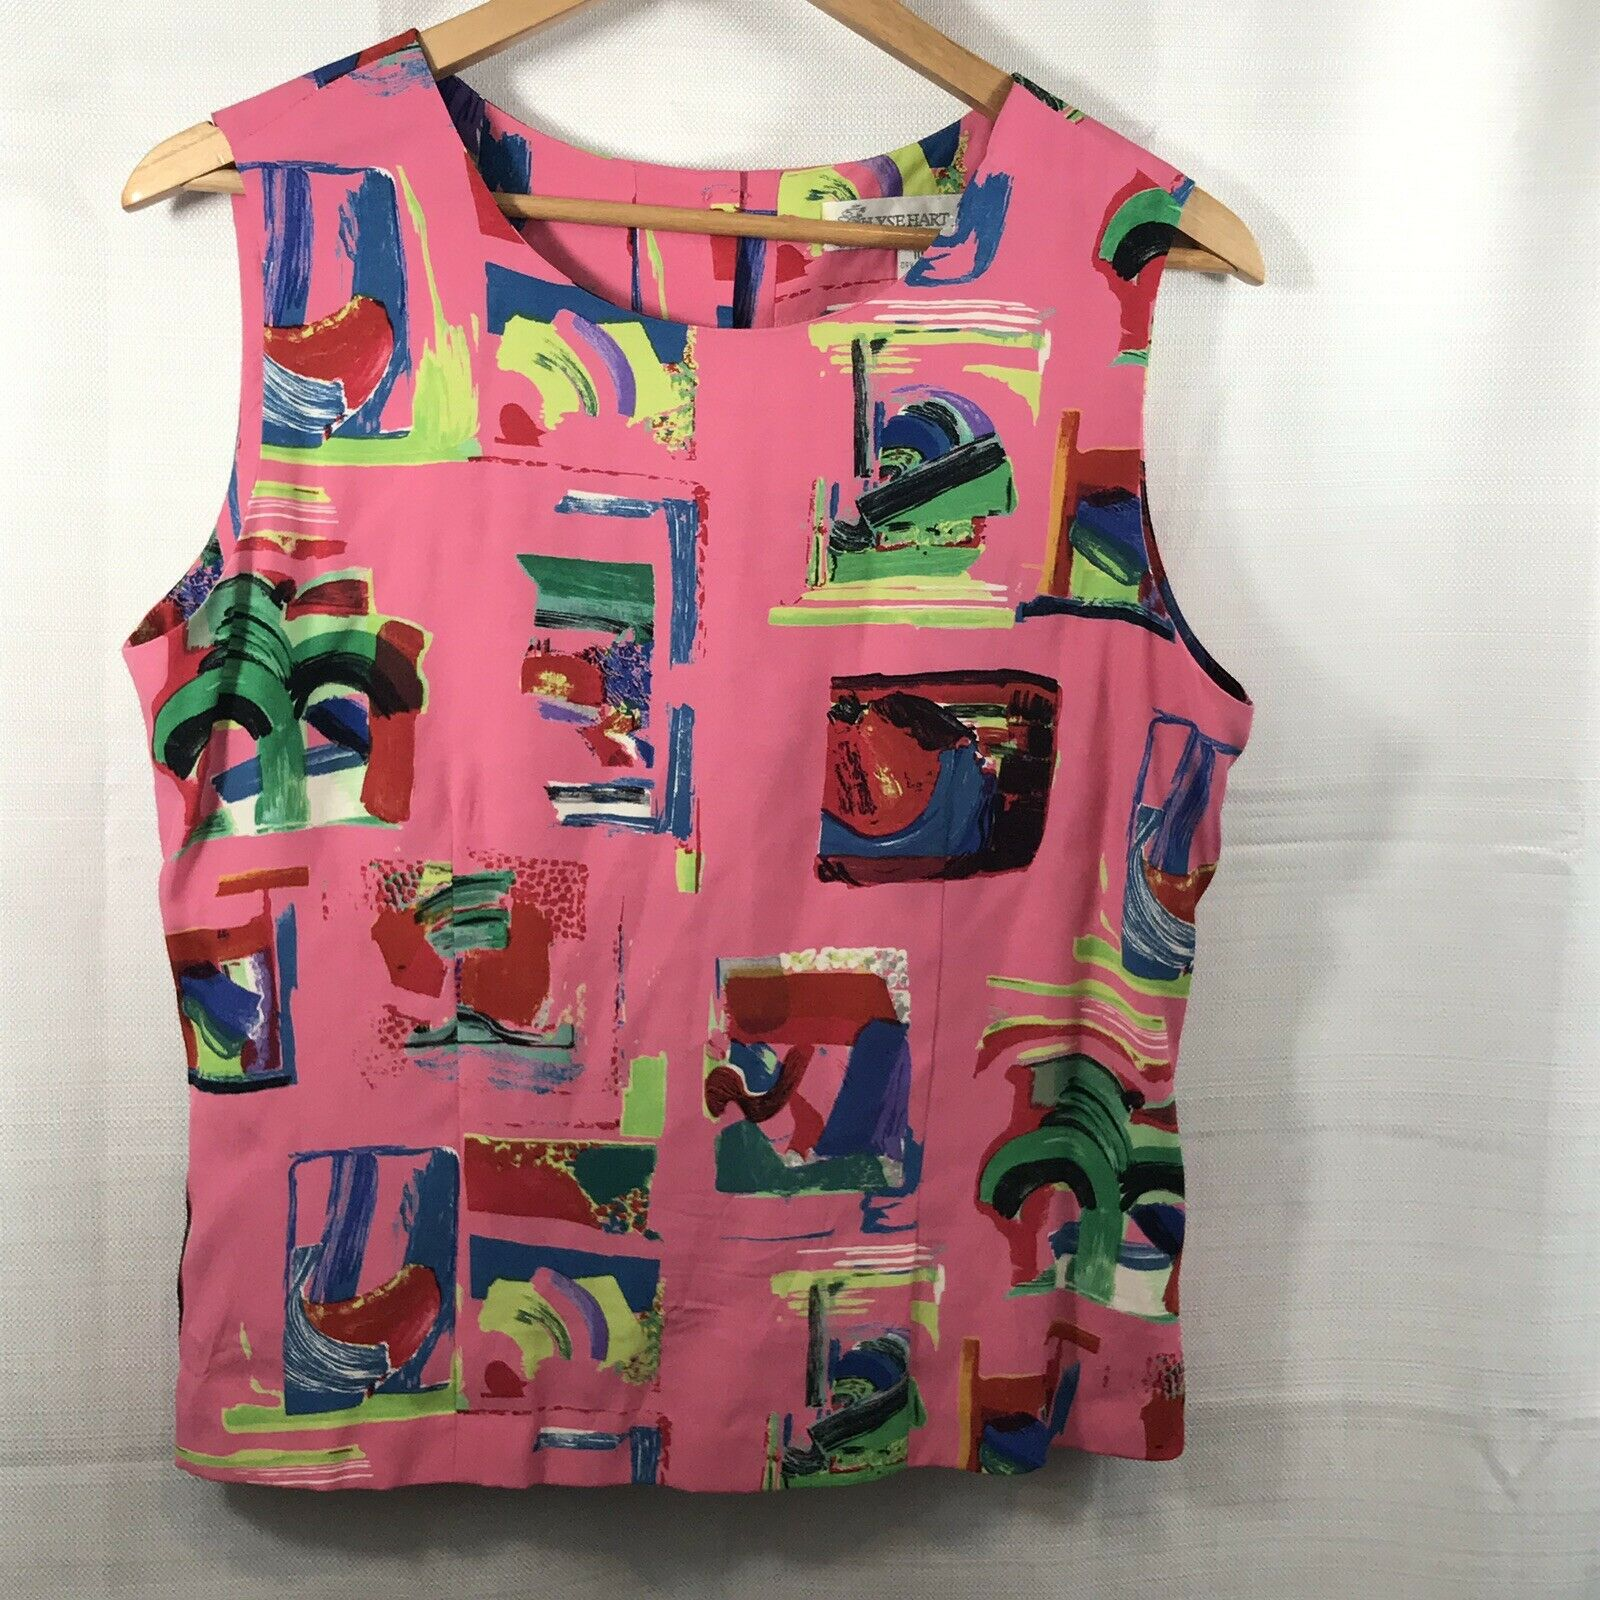 Jilyse Hart Ltd. Women's Sleeveless Button Down Top size 10 multi colord pink